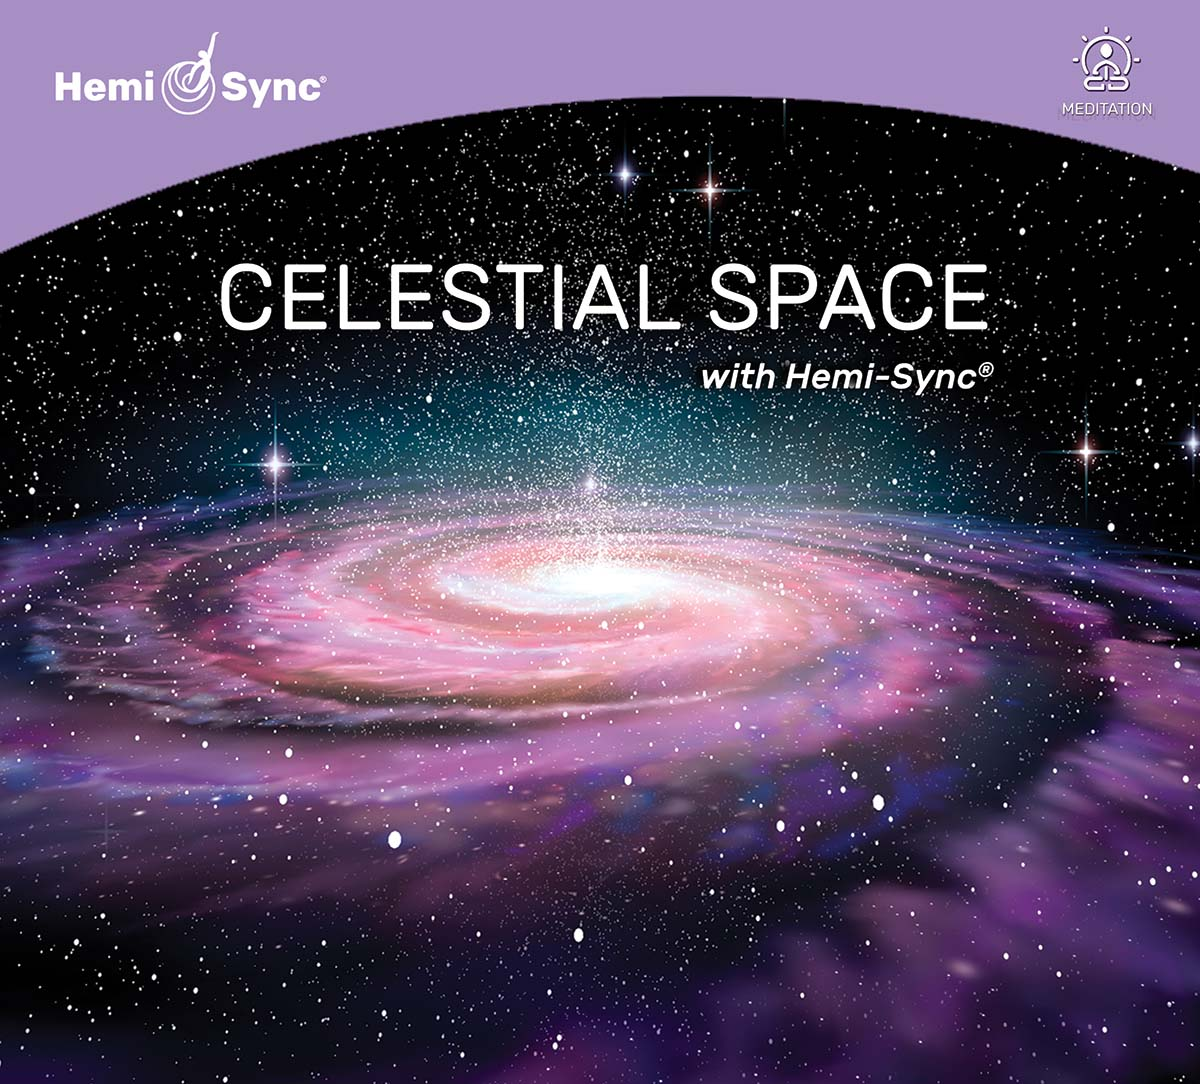 https://hemi-sync.com/wp-content/uploads/2019/03/MMA007DL_Celestial_Space_with_Hemi-Sync-mp3-image.jpg